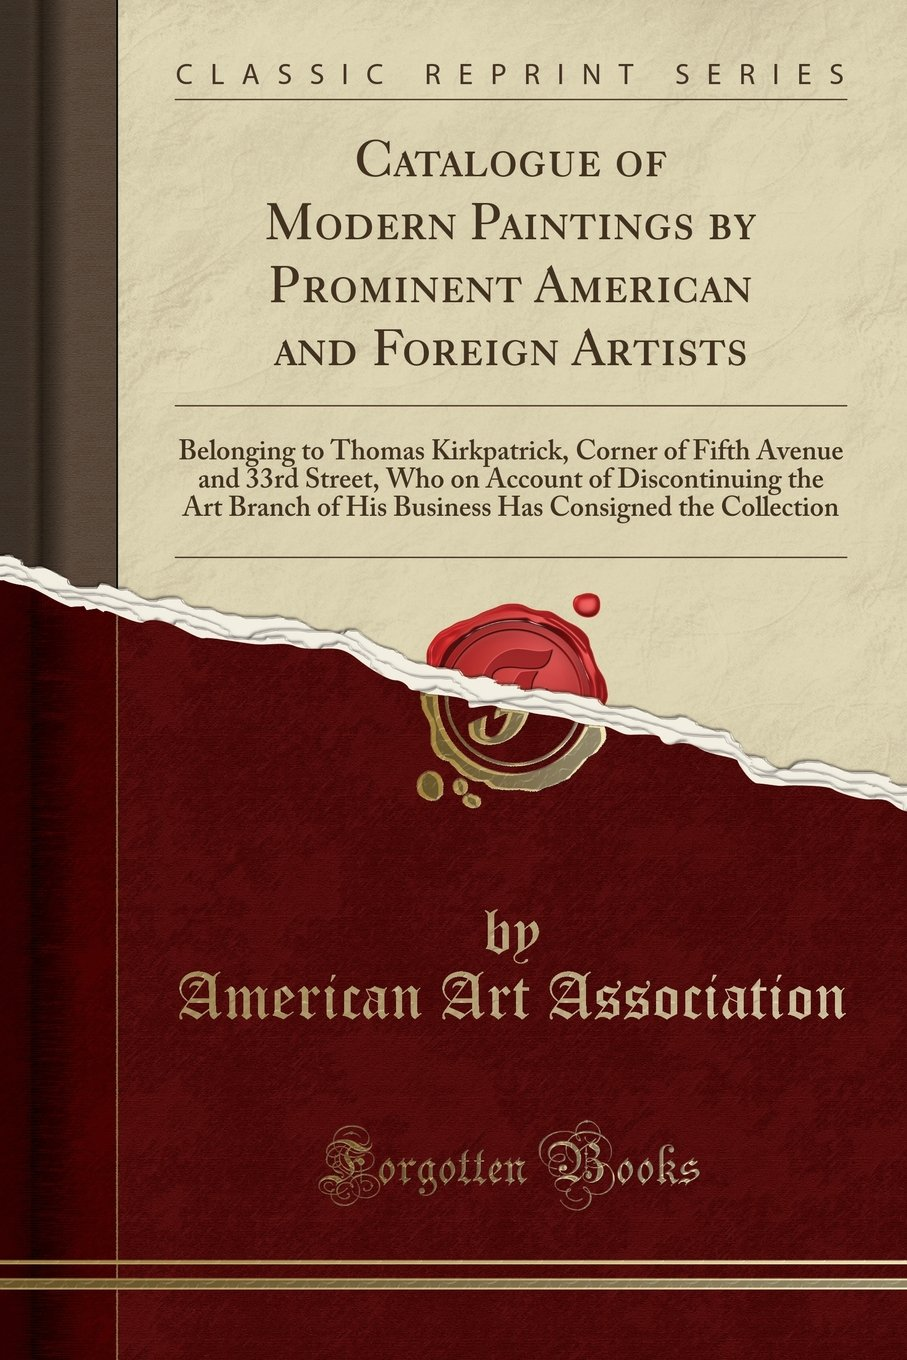 Download Catalogue of Modern Paintings by Prominent American and Foreign Artists: Belonging to Thomas Kirkpatrick, Corner of Fifth Avenue and 33rd Street, Who ... of His Business Has Consigned the Collection ebook